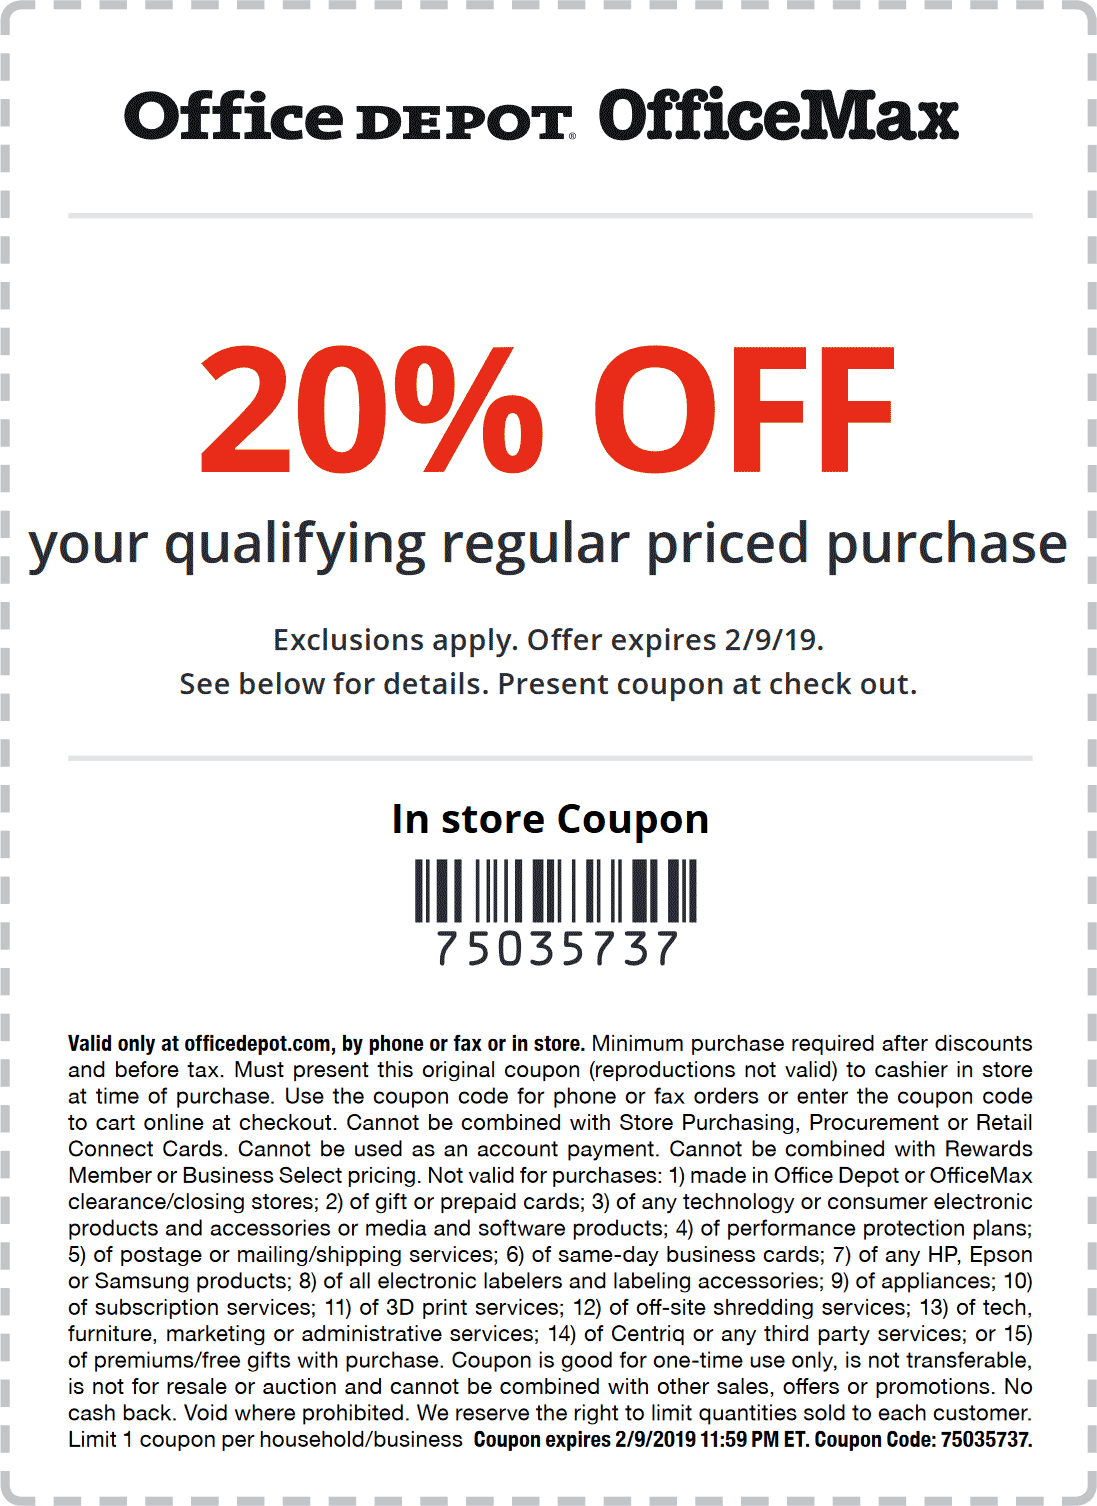 Office Depot Coupon October 2019 20% off at Office Depot & OfficeMax, or online via promo code 75035737